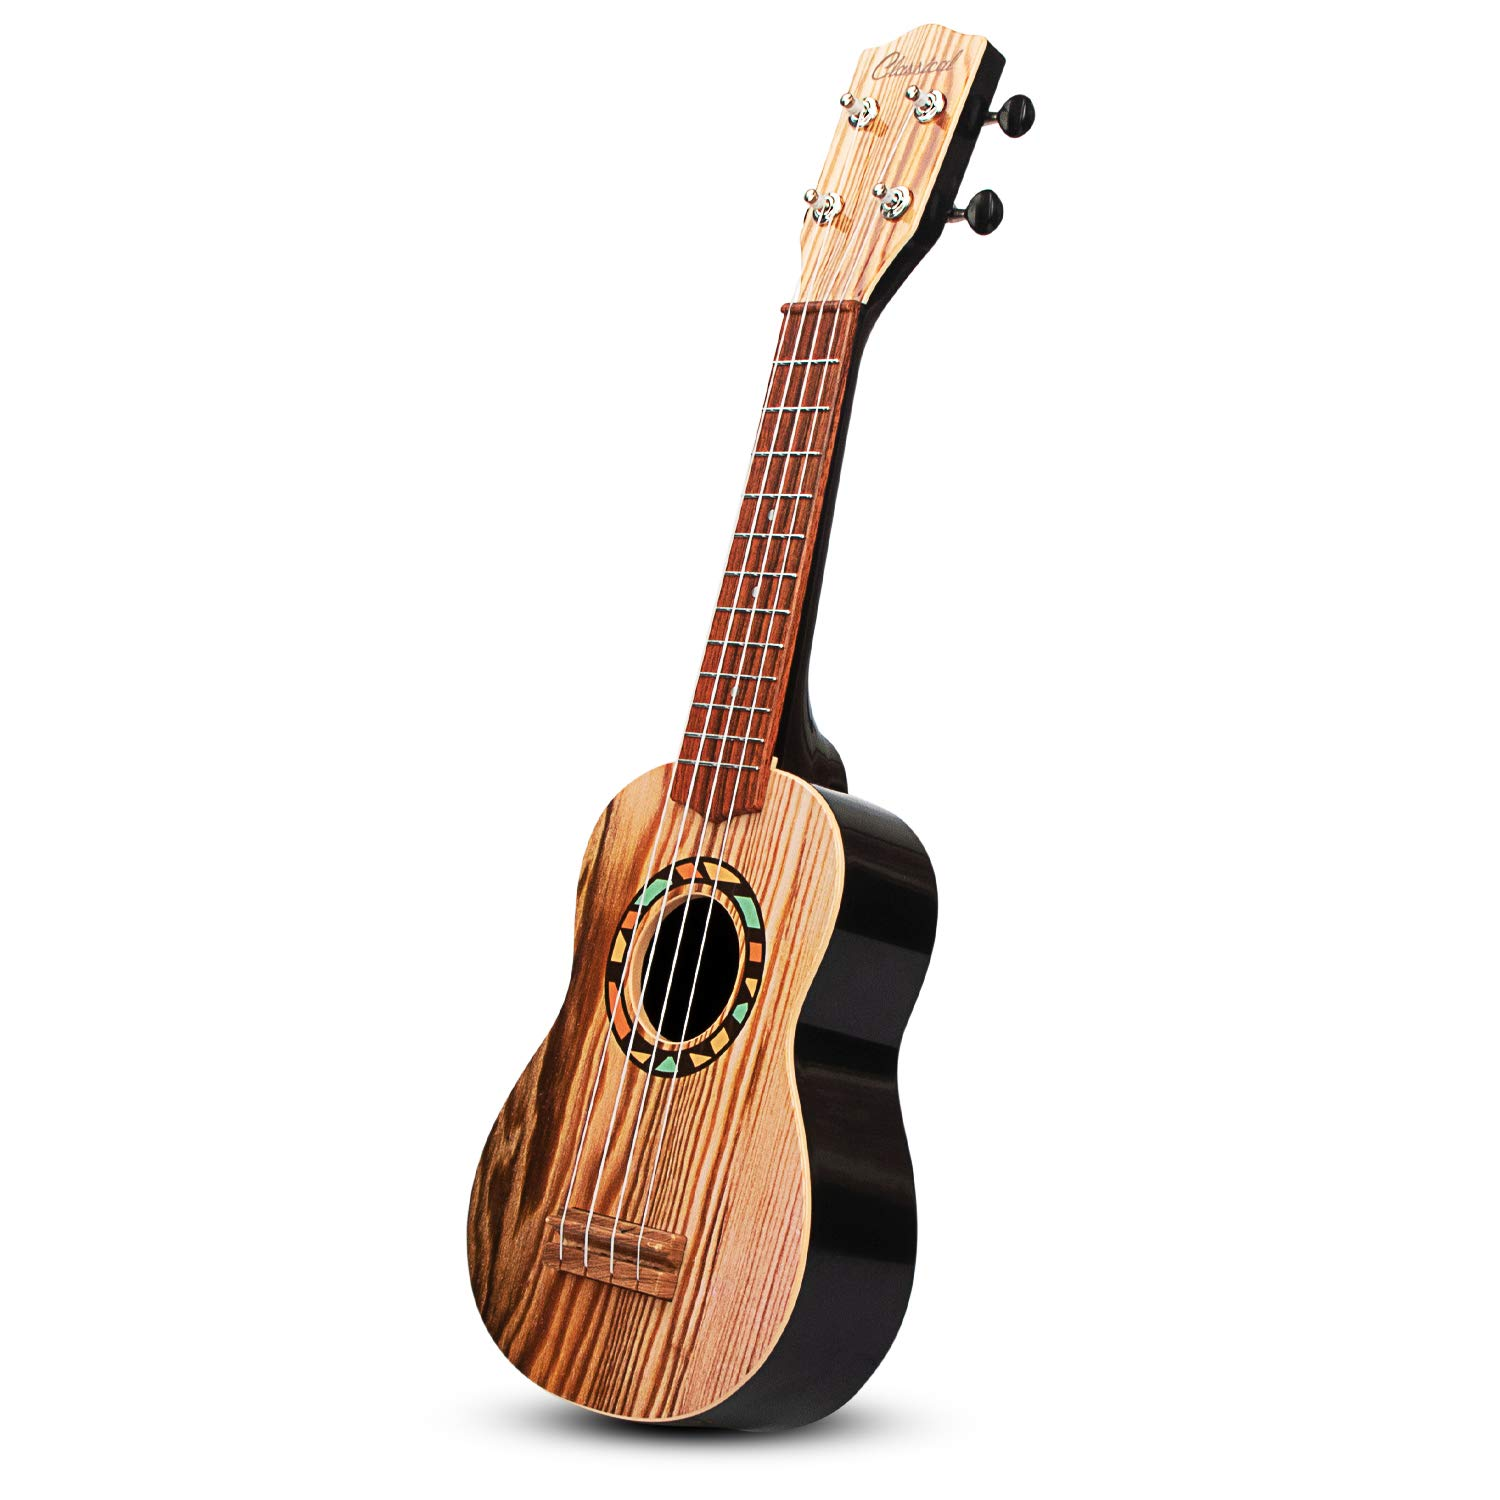 aPerfectLife 21'' Kids Ukulele Guitar Toy 4 Strings Mini Guitar Children Musical Instruments Educational Learning Toys with Picks and Strap for Toddler Kids Boys Girls Beginner Starter (Burlywood) by aPerfectLife